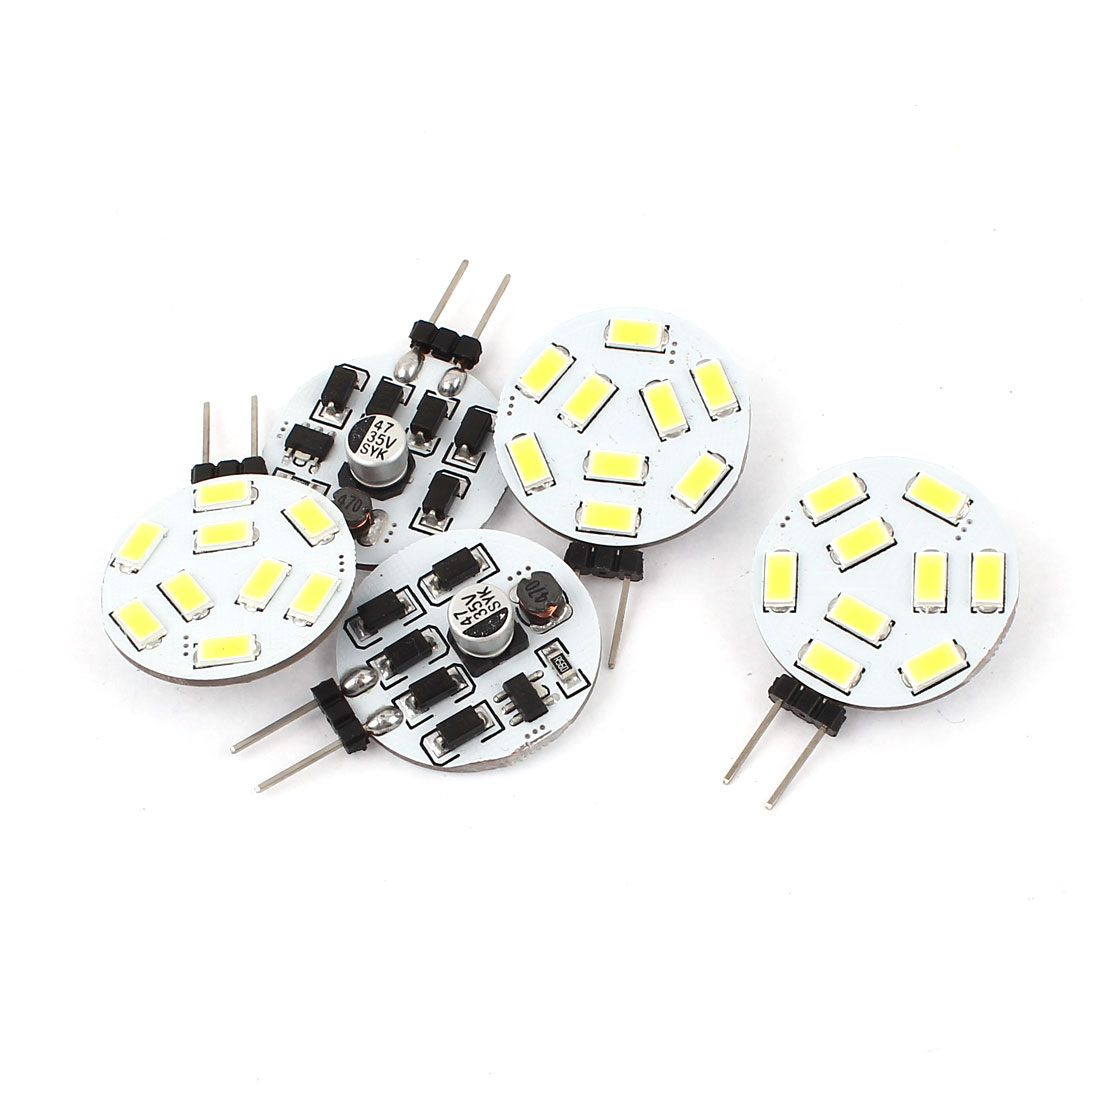 5 x 120 Degree 1.2W G4 5730 SMD 9 LED Cabinet Marine Boat Light Bulb Lamp White